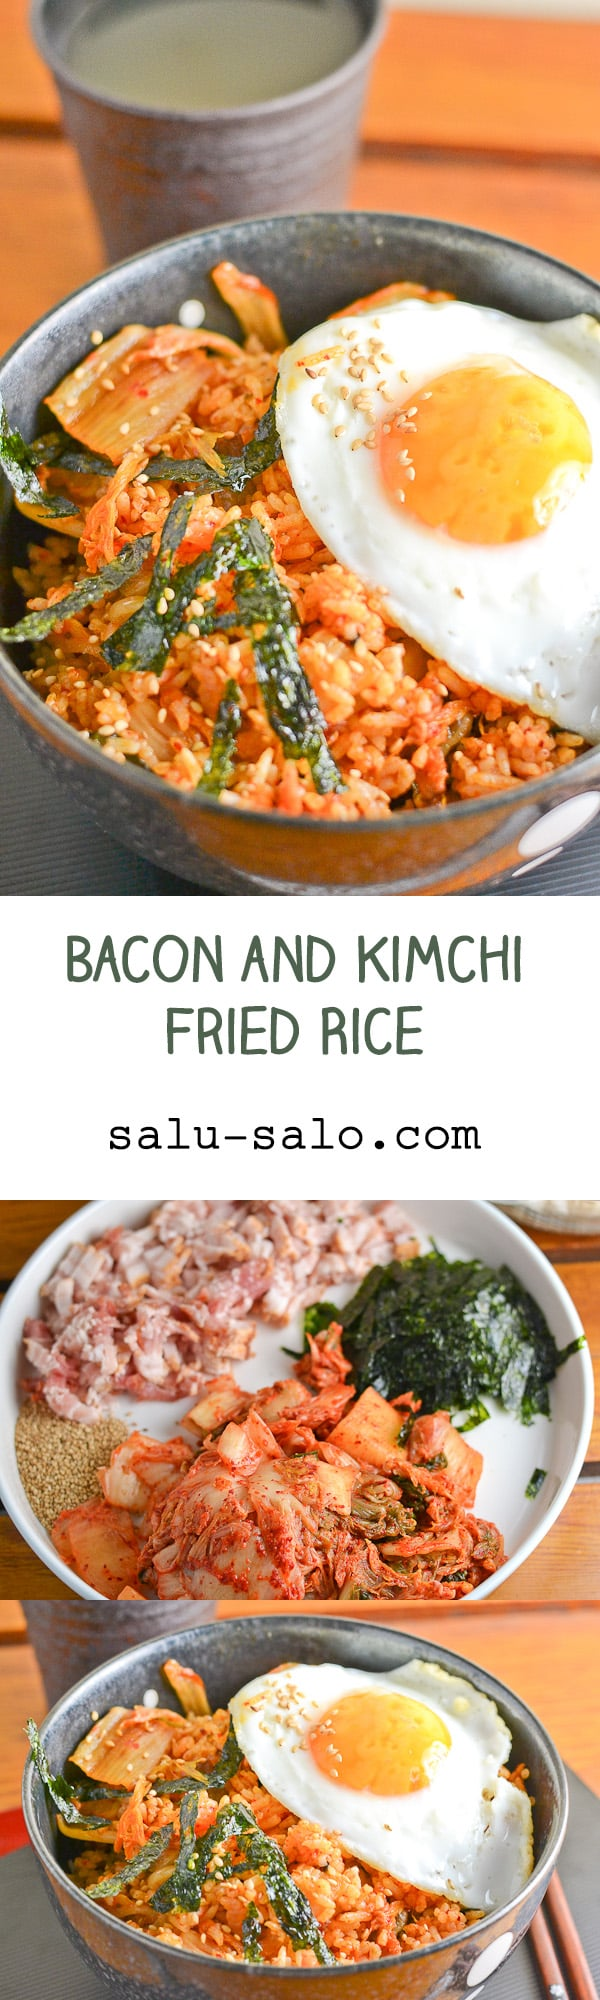 Bacon-and-Kimchi-Fried-Rice.jpg?resize=600%2C2000